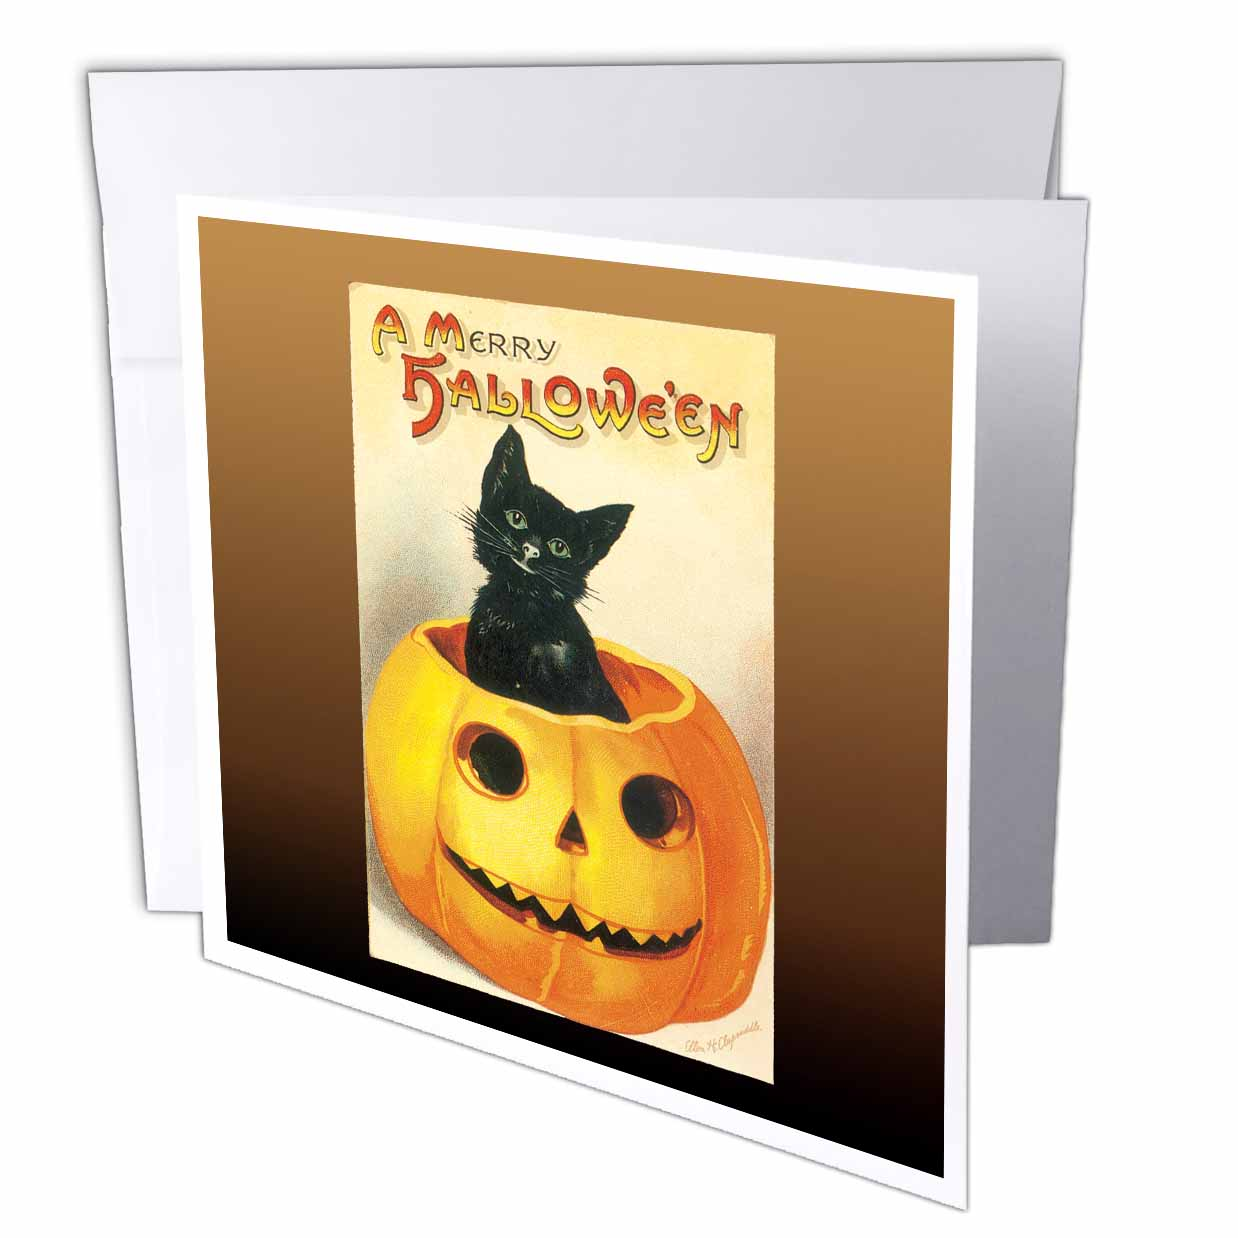 3dRose Vintage A Merry Halloween with a Black Cat sitting in a Jack O Lantern Pumpkin, Greeting Cards, 6 x 6 inches, set of 12